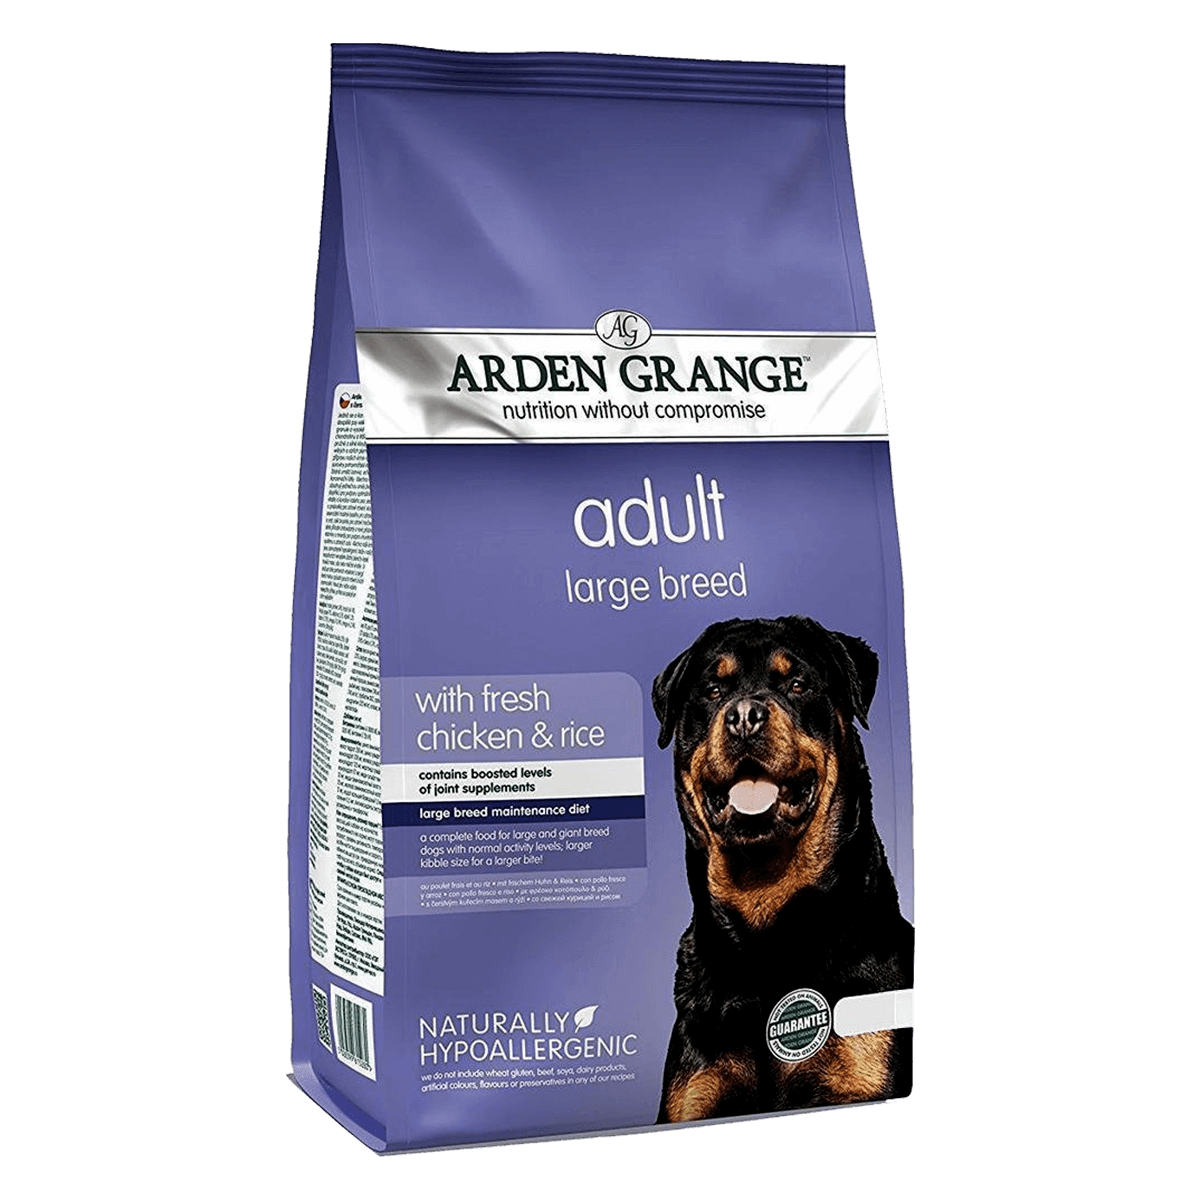 Arden Grange Adult Dog Large Breed 2 кг - корм Арден Гранж для крупных пород собак